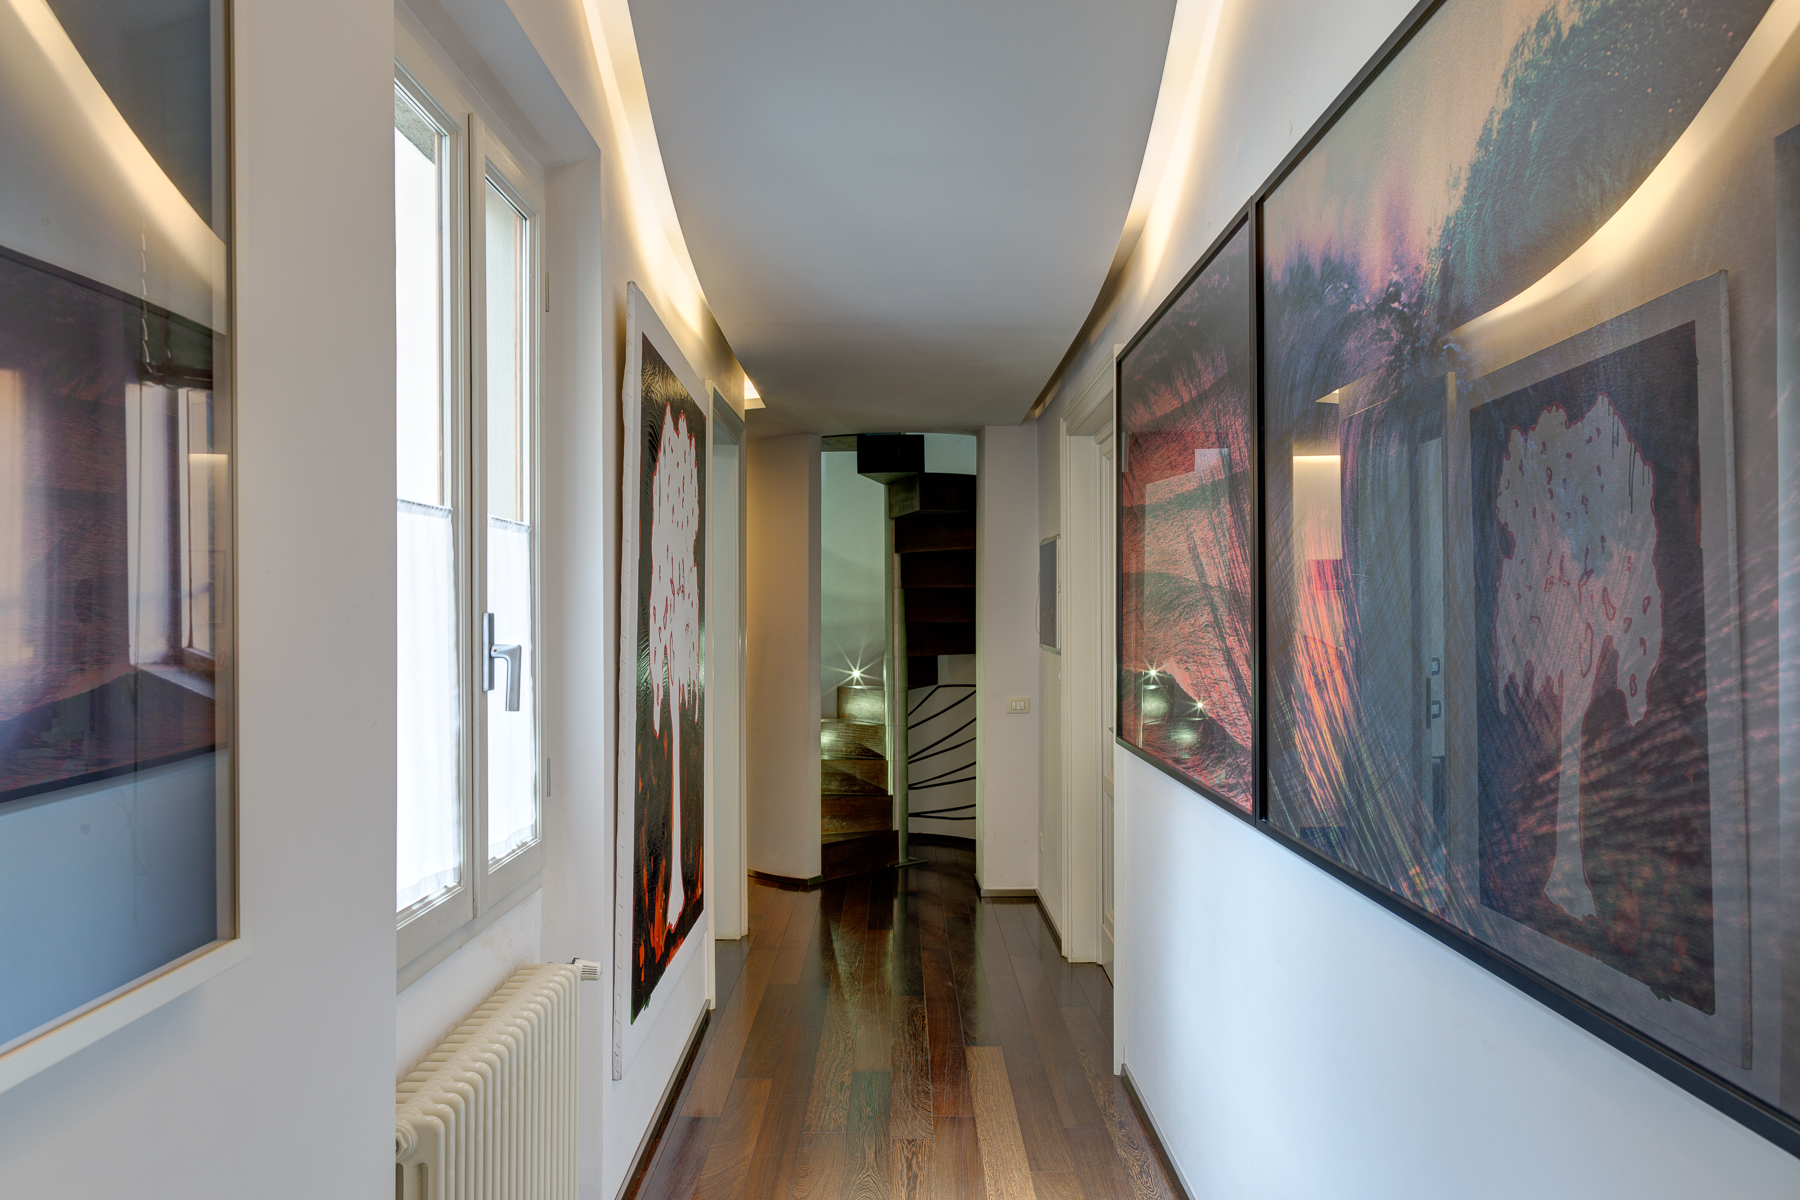 Additional photo for property listing at Design apartment in Florence Via Lorenzo il Magnifico Firenze, Florence 50129 Italia